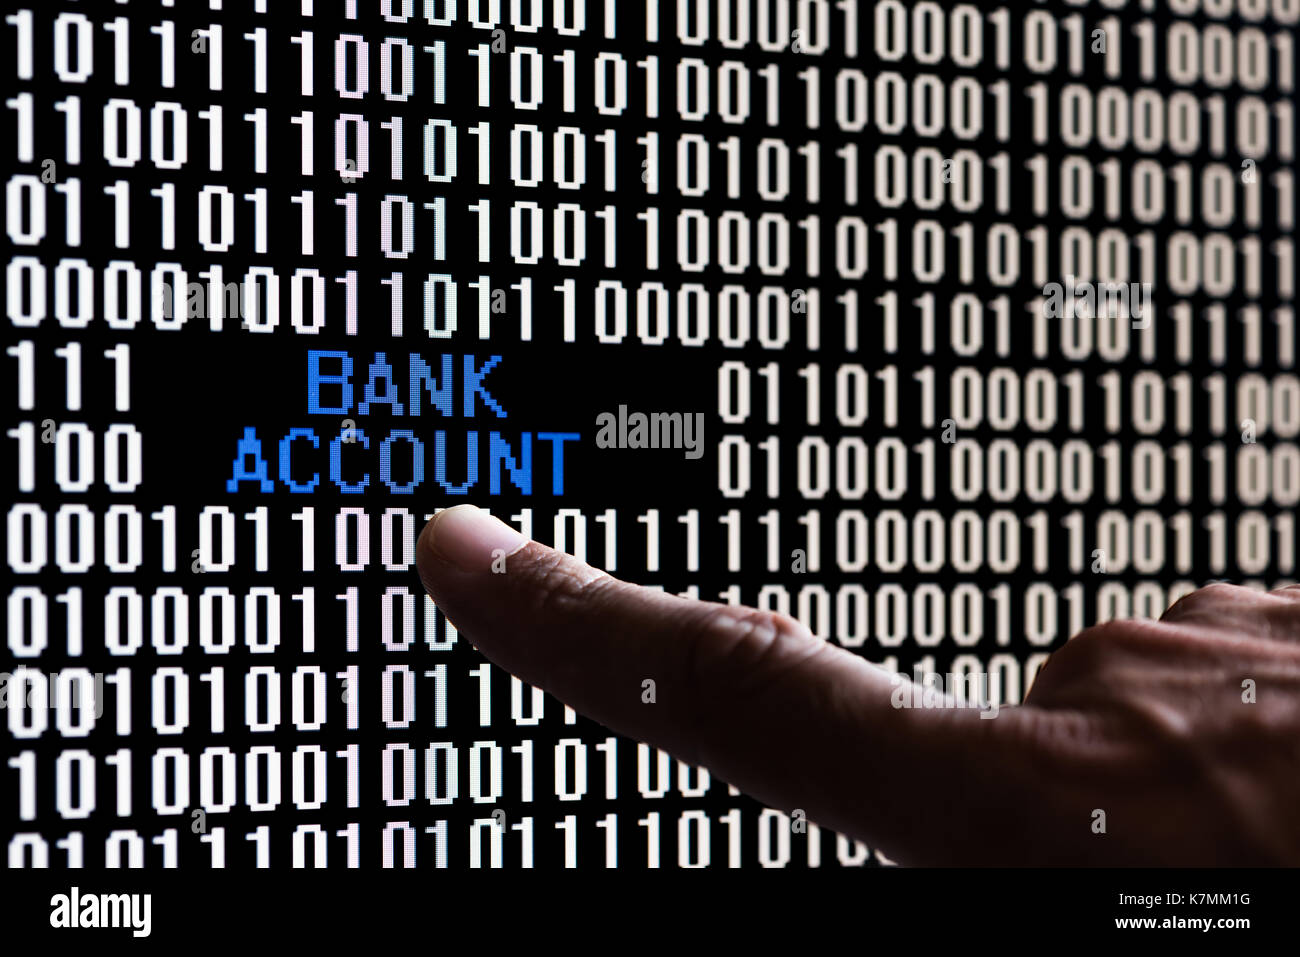 Finger pointing bank account data in binary code - Stock Image